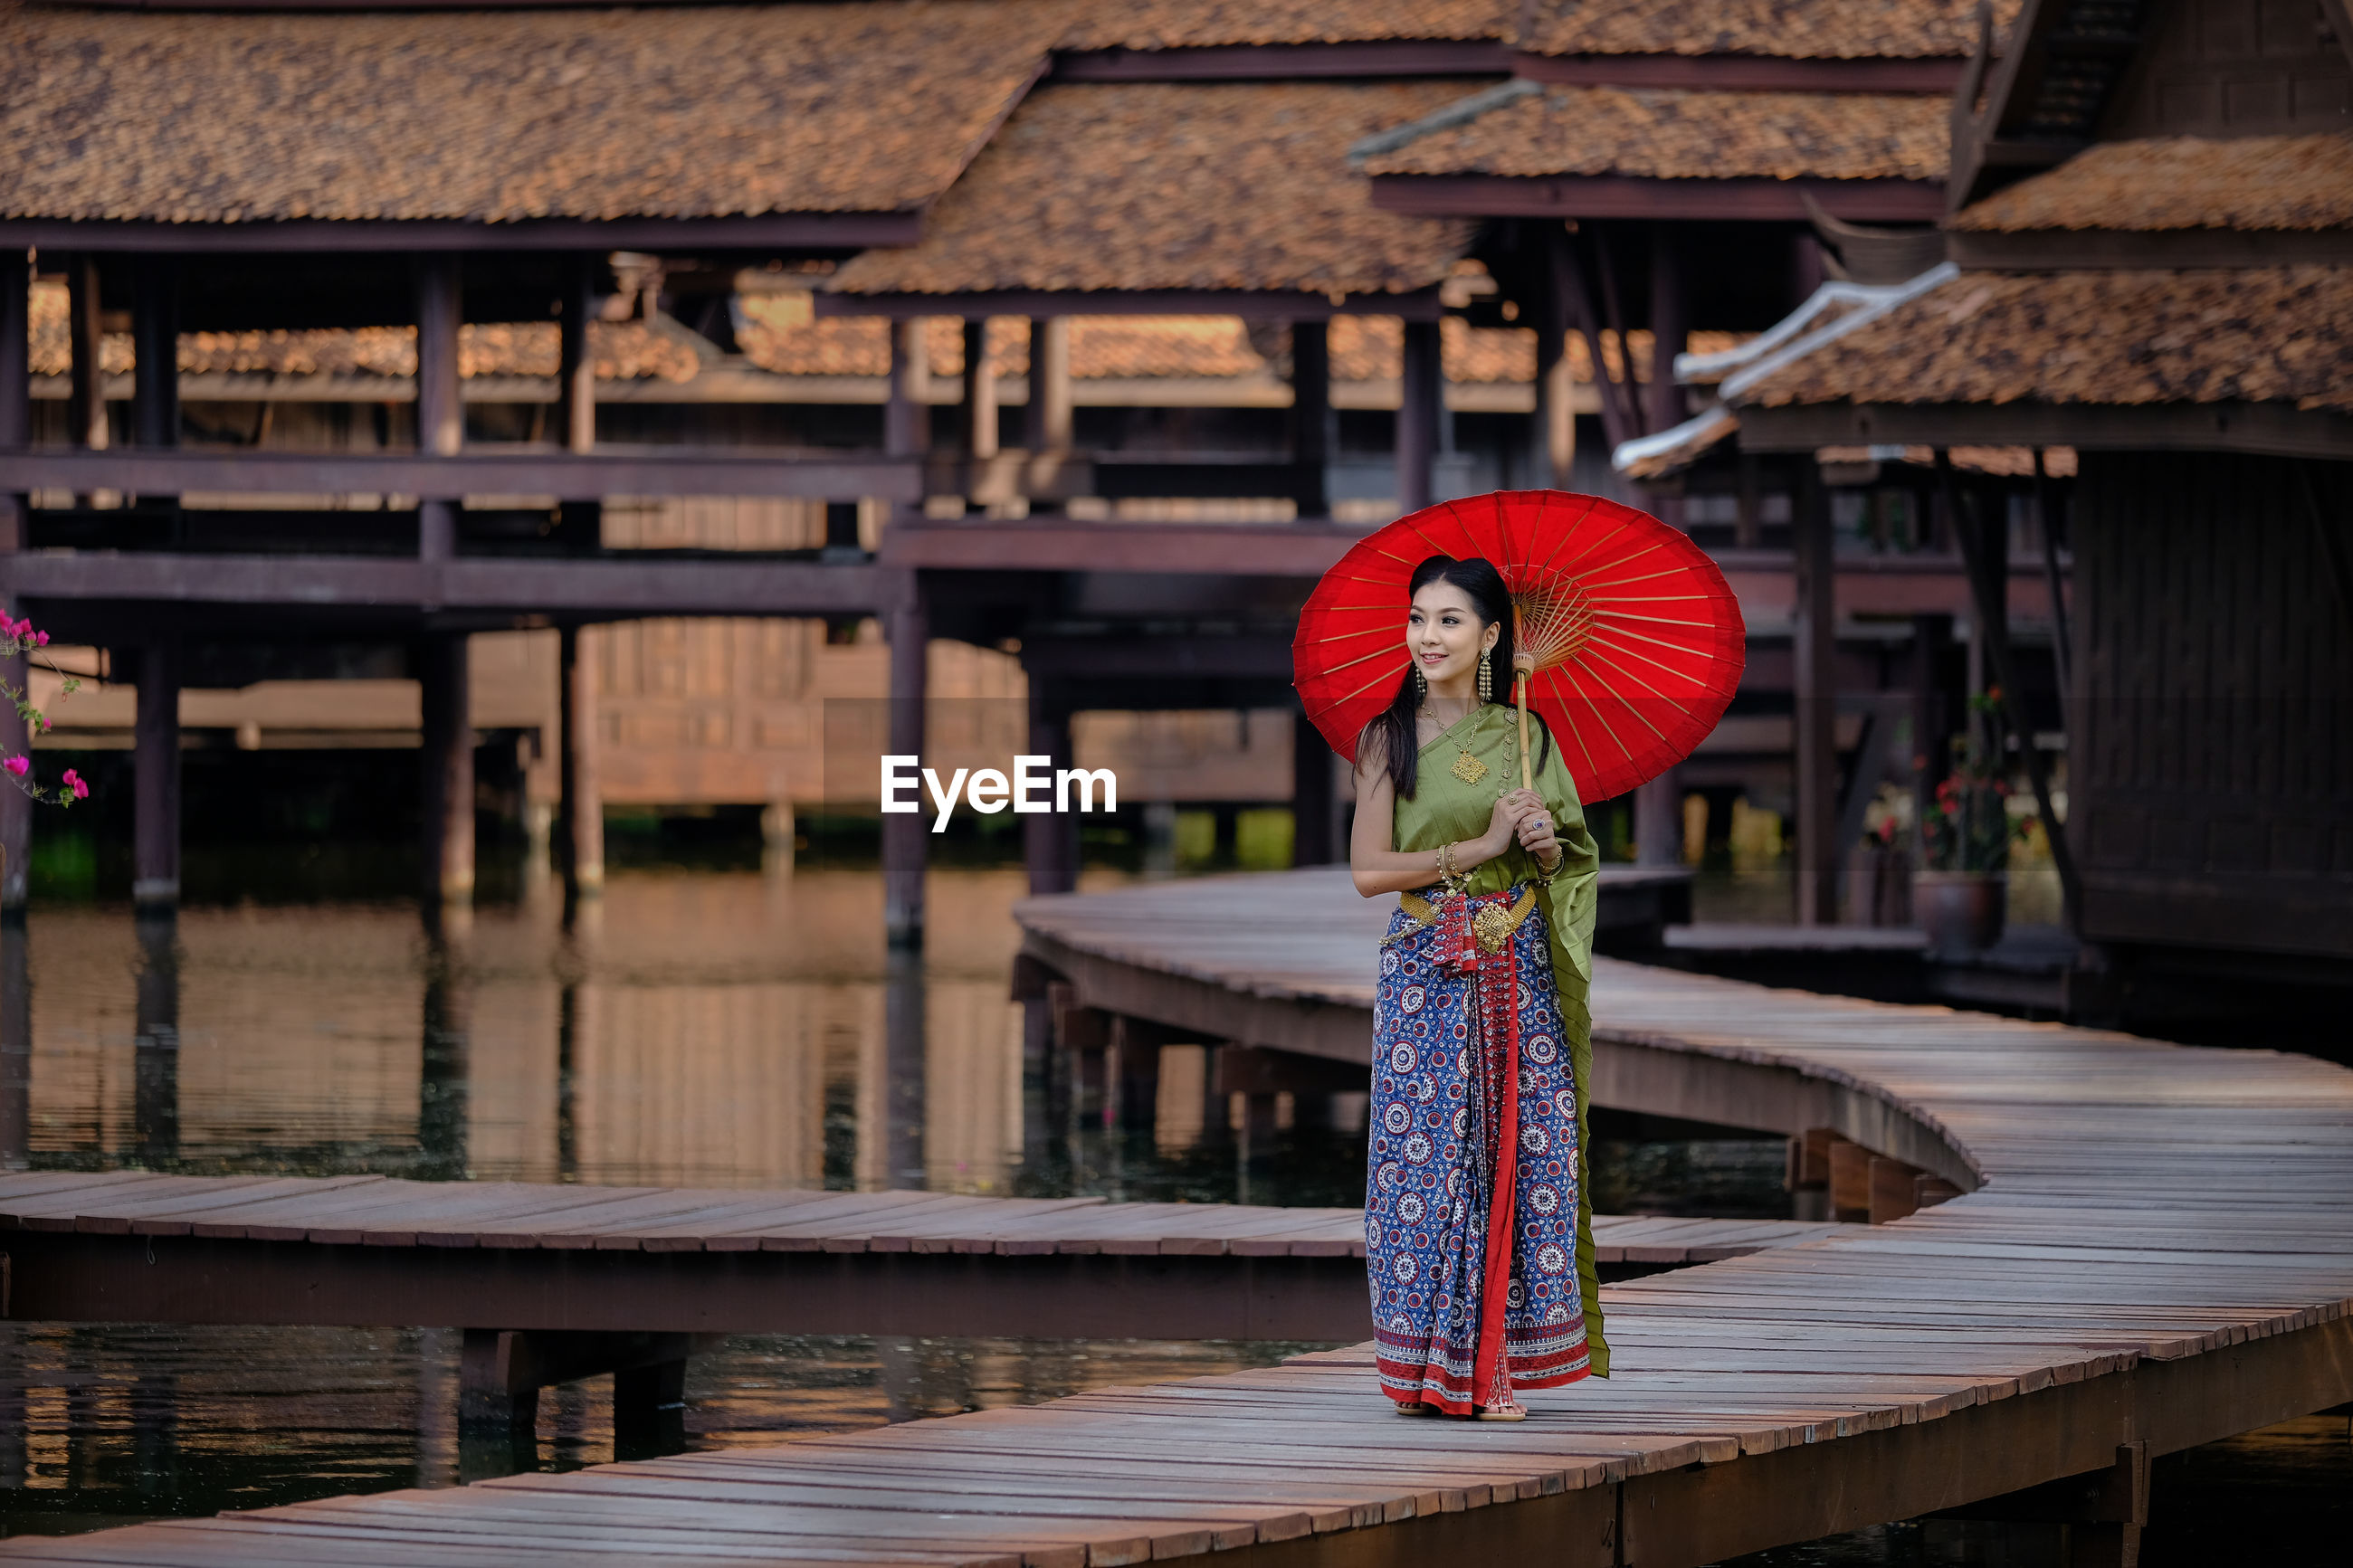 Smiling young woman standing with umbrella on pier against stilt houses